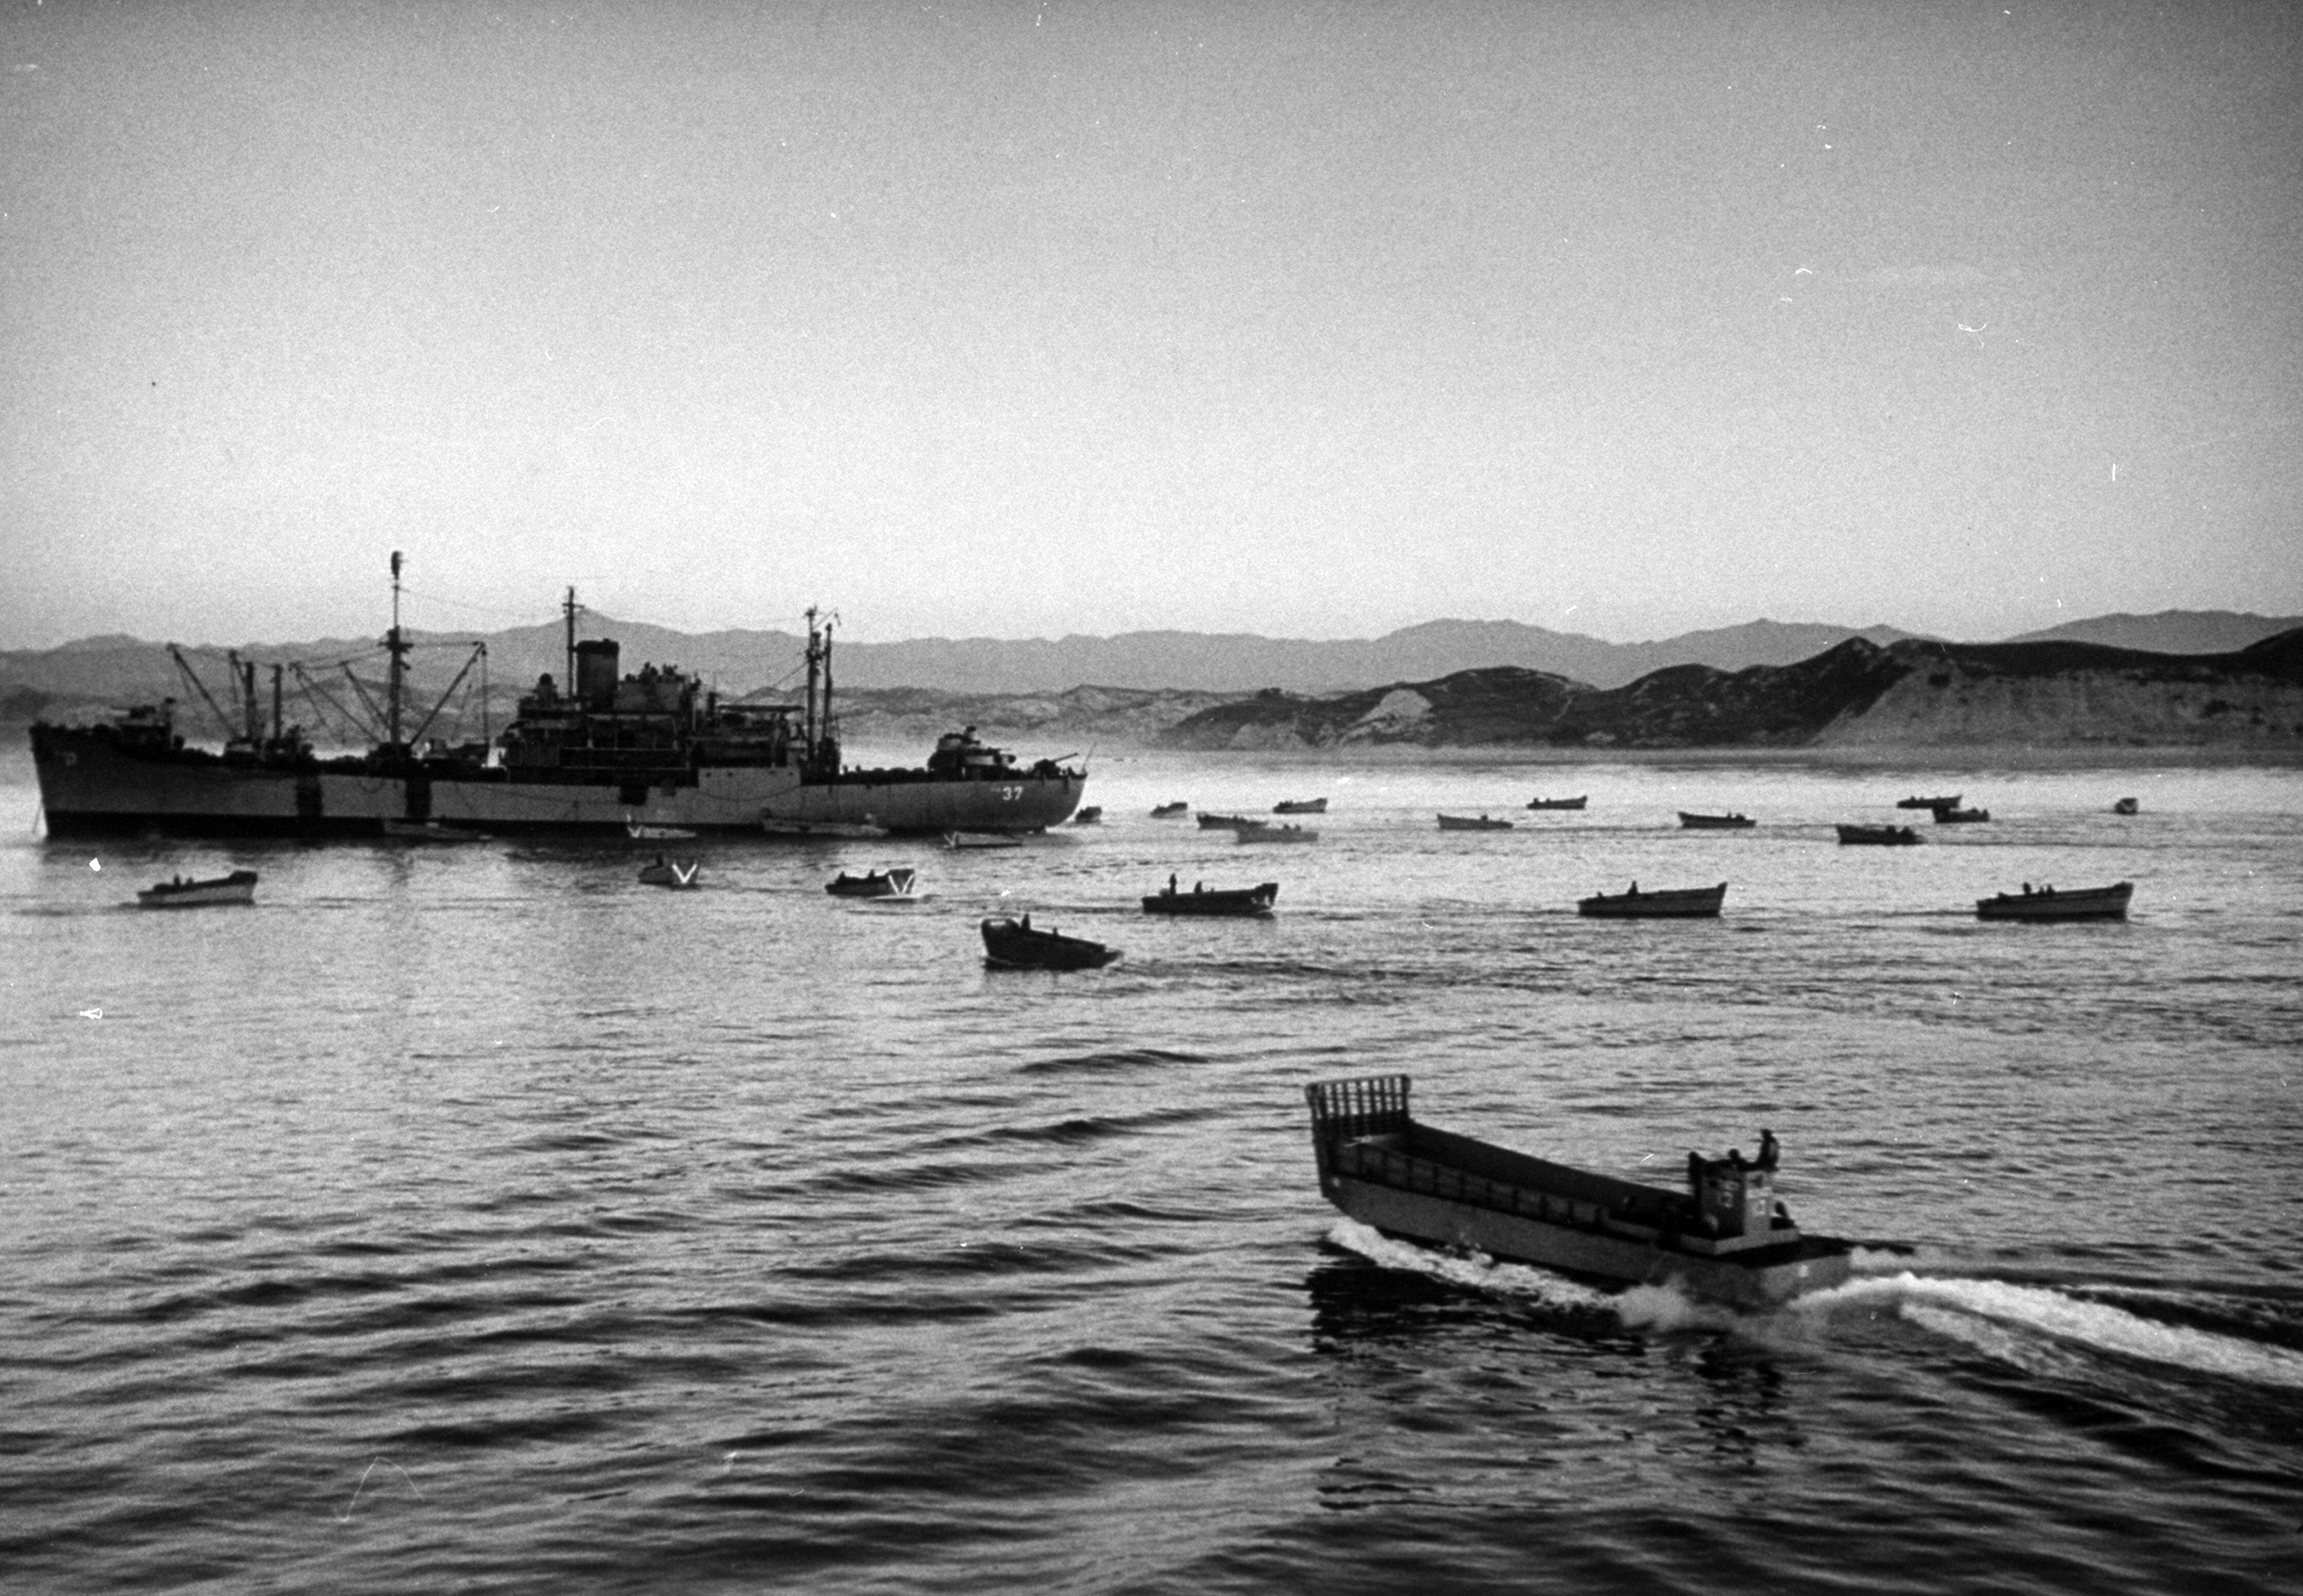 <b>Caption from LIFE.</b> At dawn on July 18 P'ohang-Dong's harbor is dotted with landing craft ready to take men ashore. A scouting party which went in earlier had already reported there was no opposition. This was the fastest amphibious landing in history. It was planned and staged in 10 days.